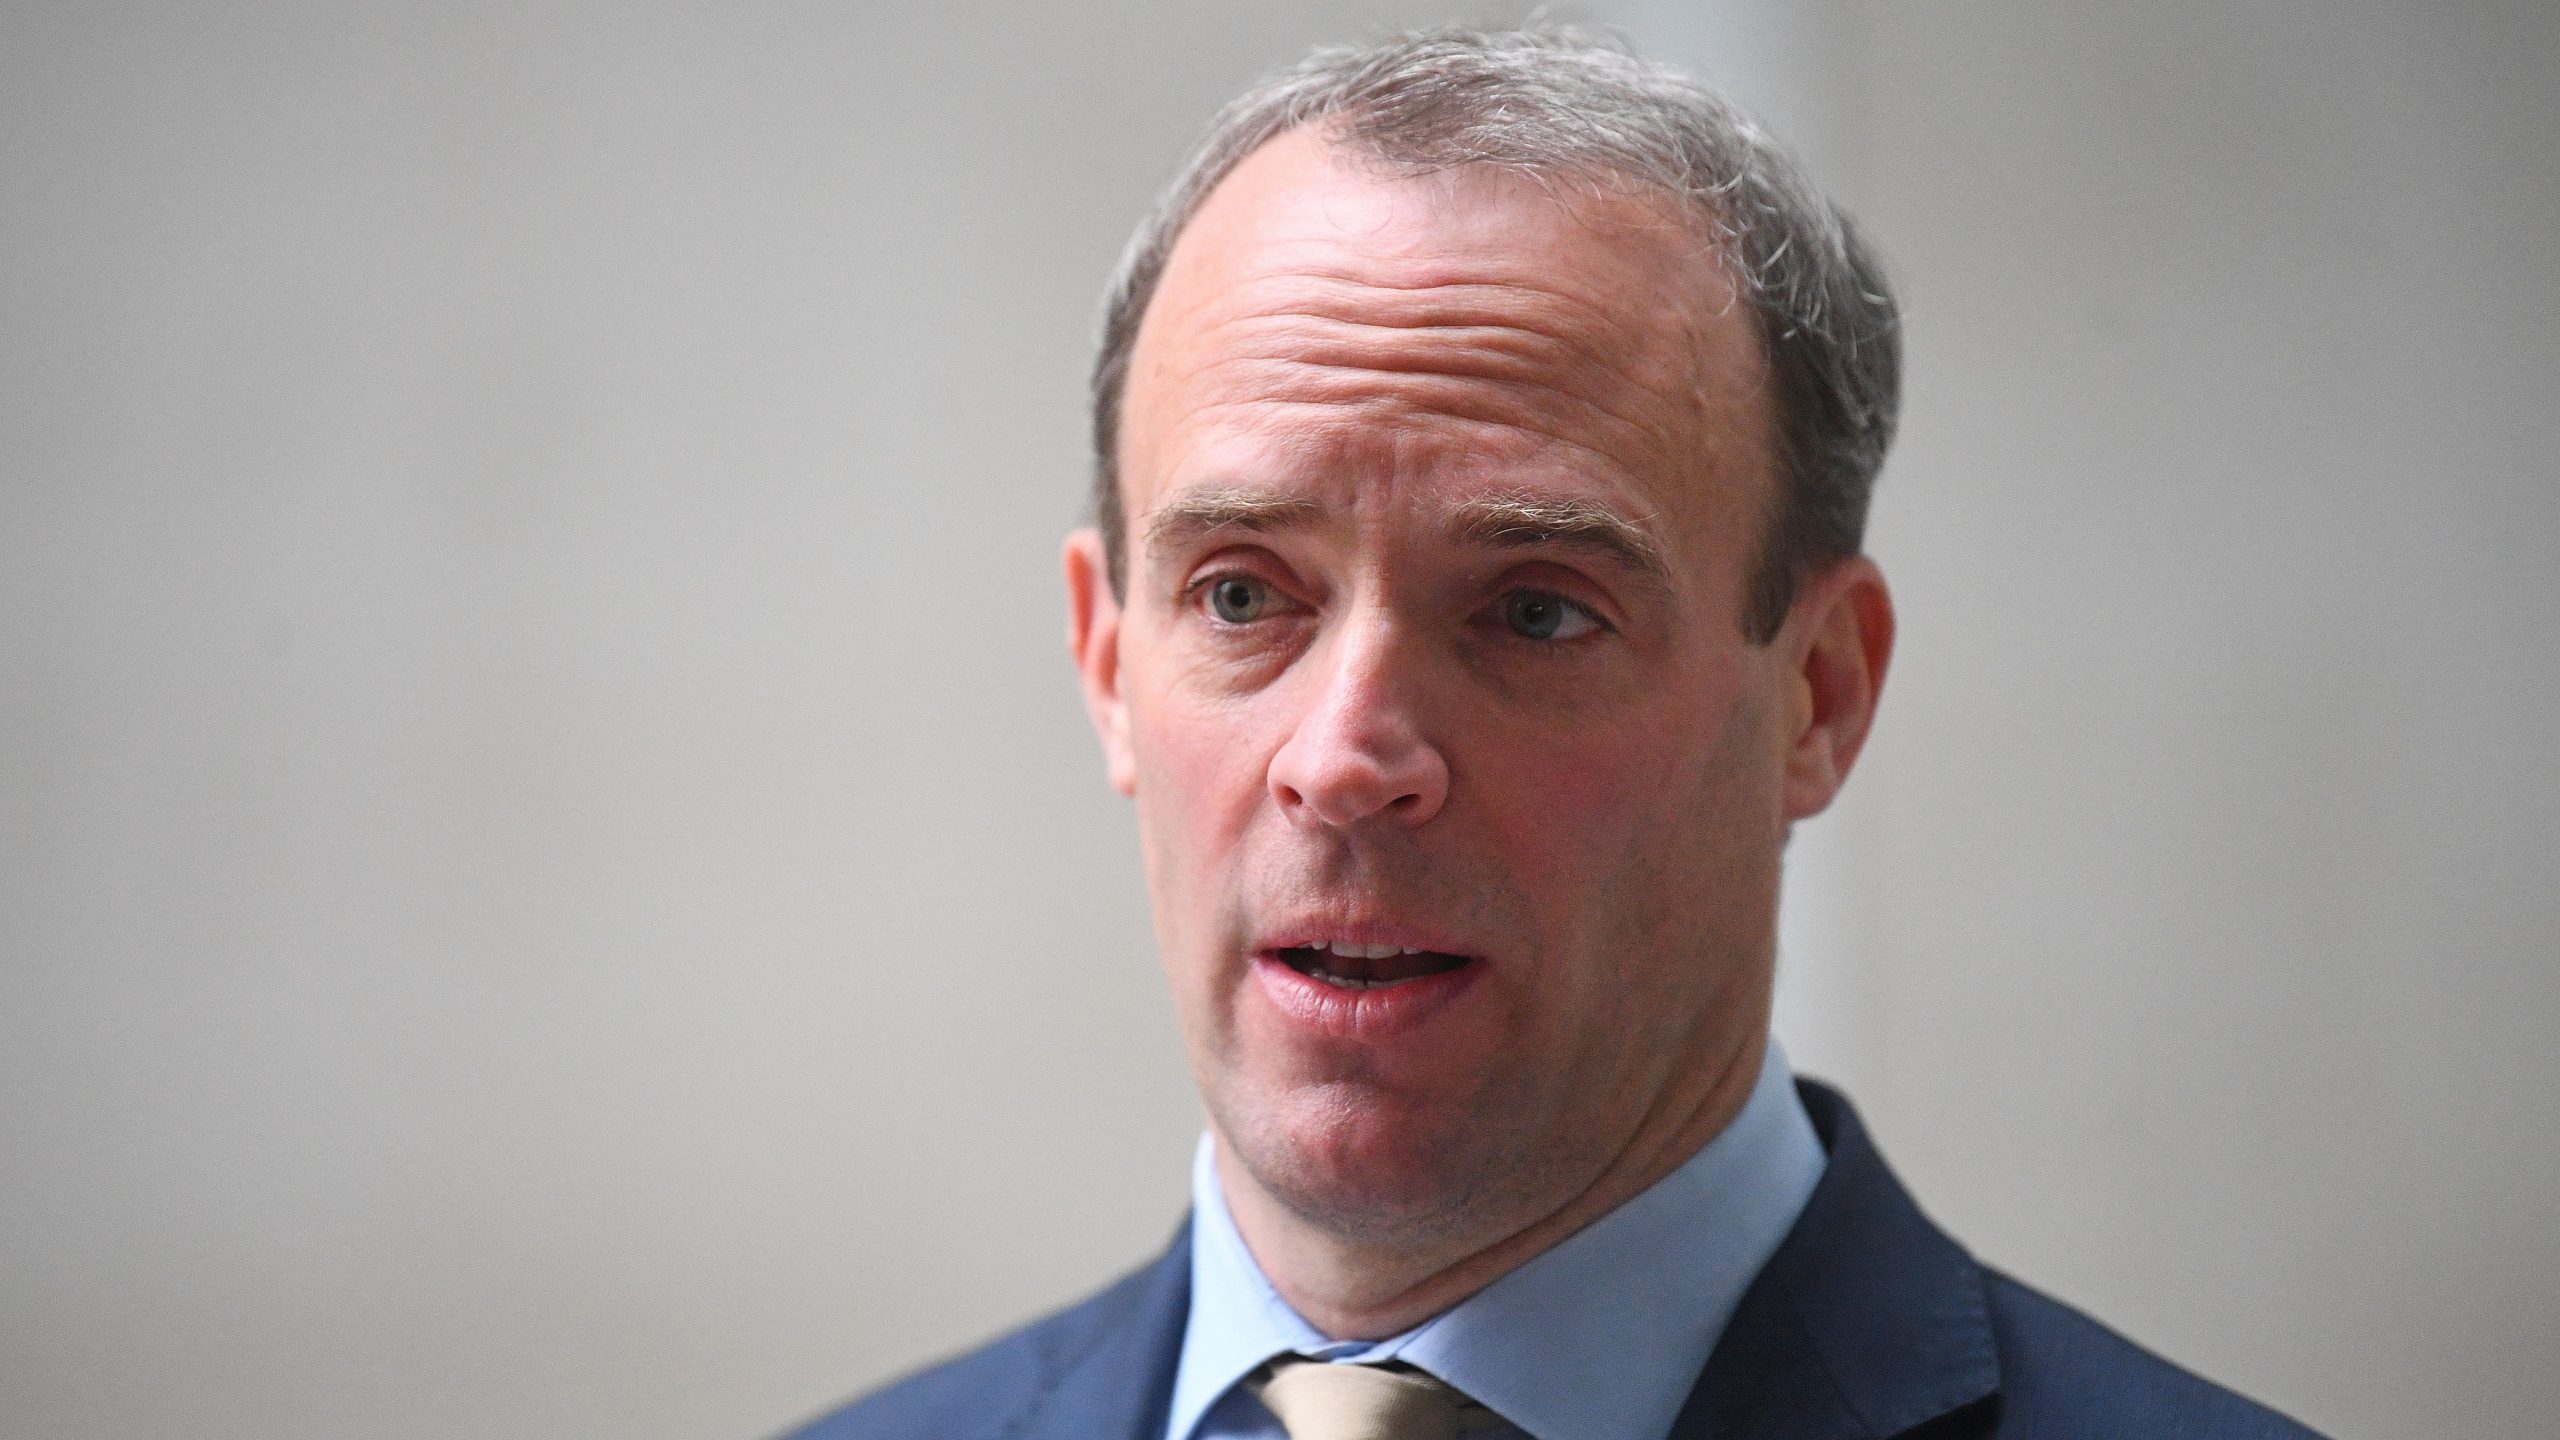 Read more about the article Foreign Secretary Dominic Raab's mobile number has been online for years